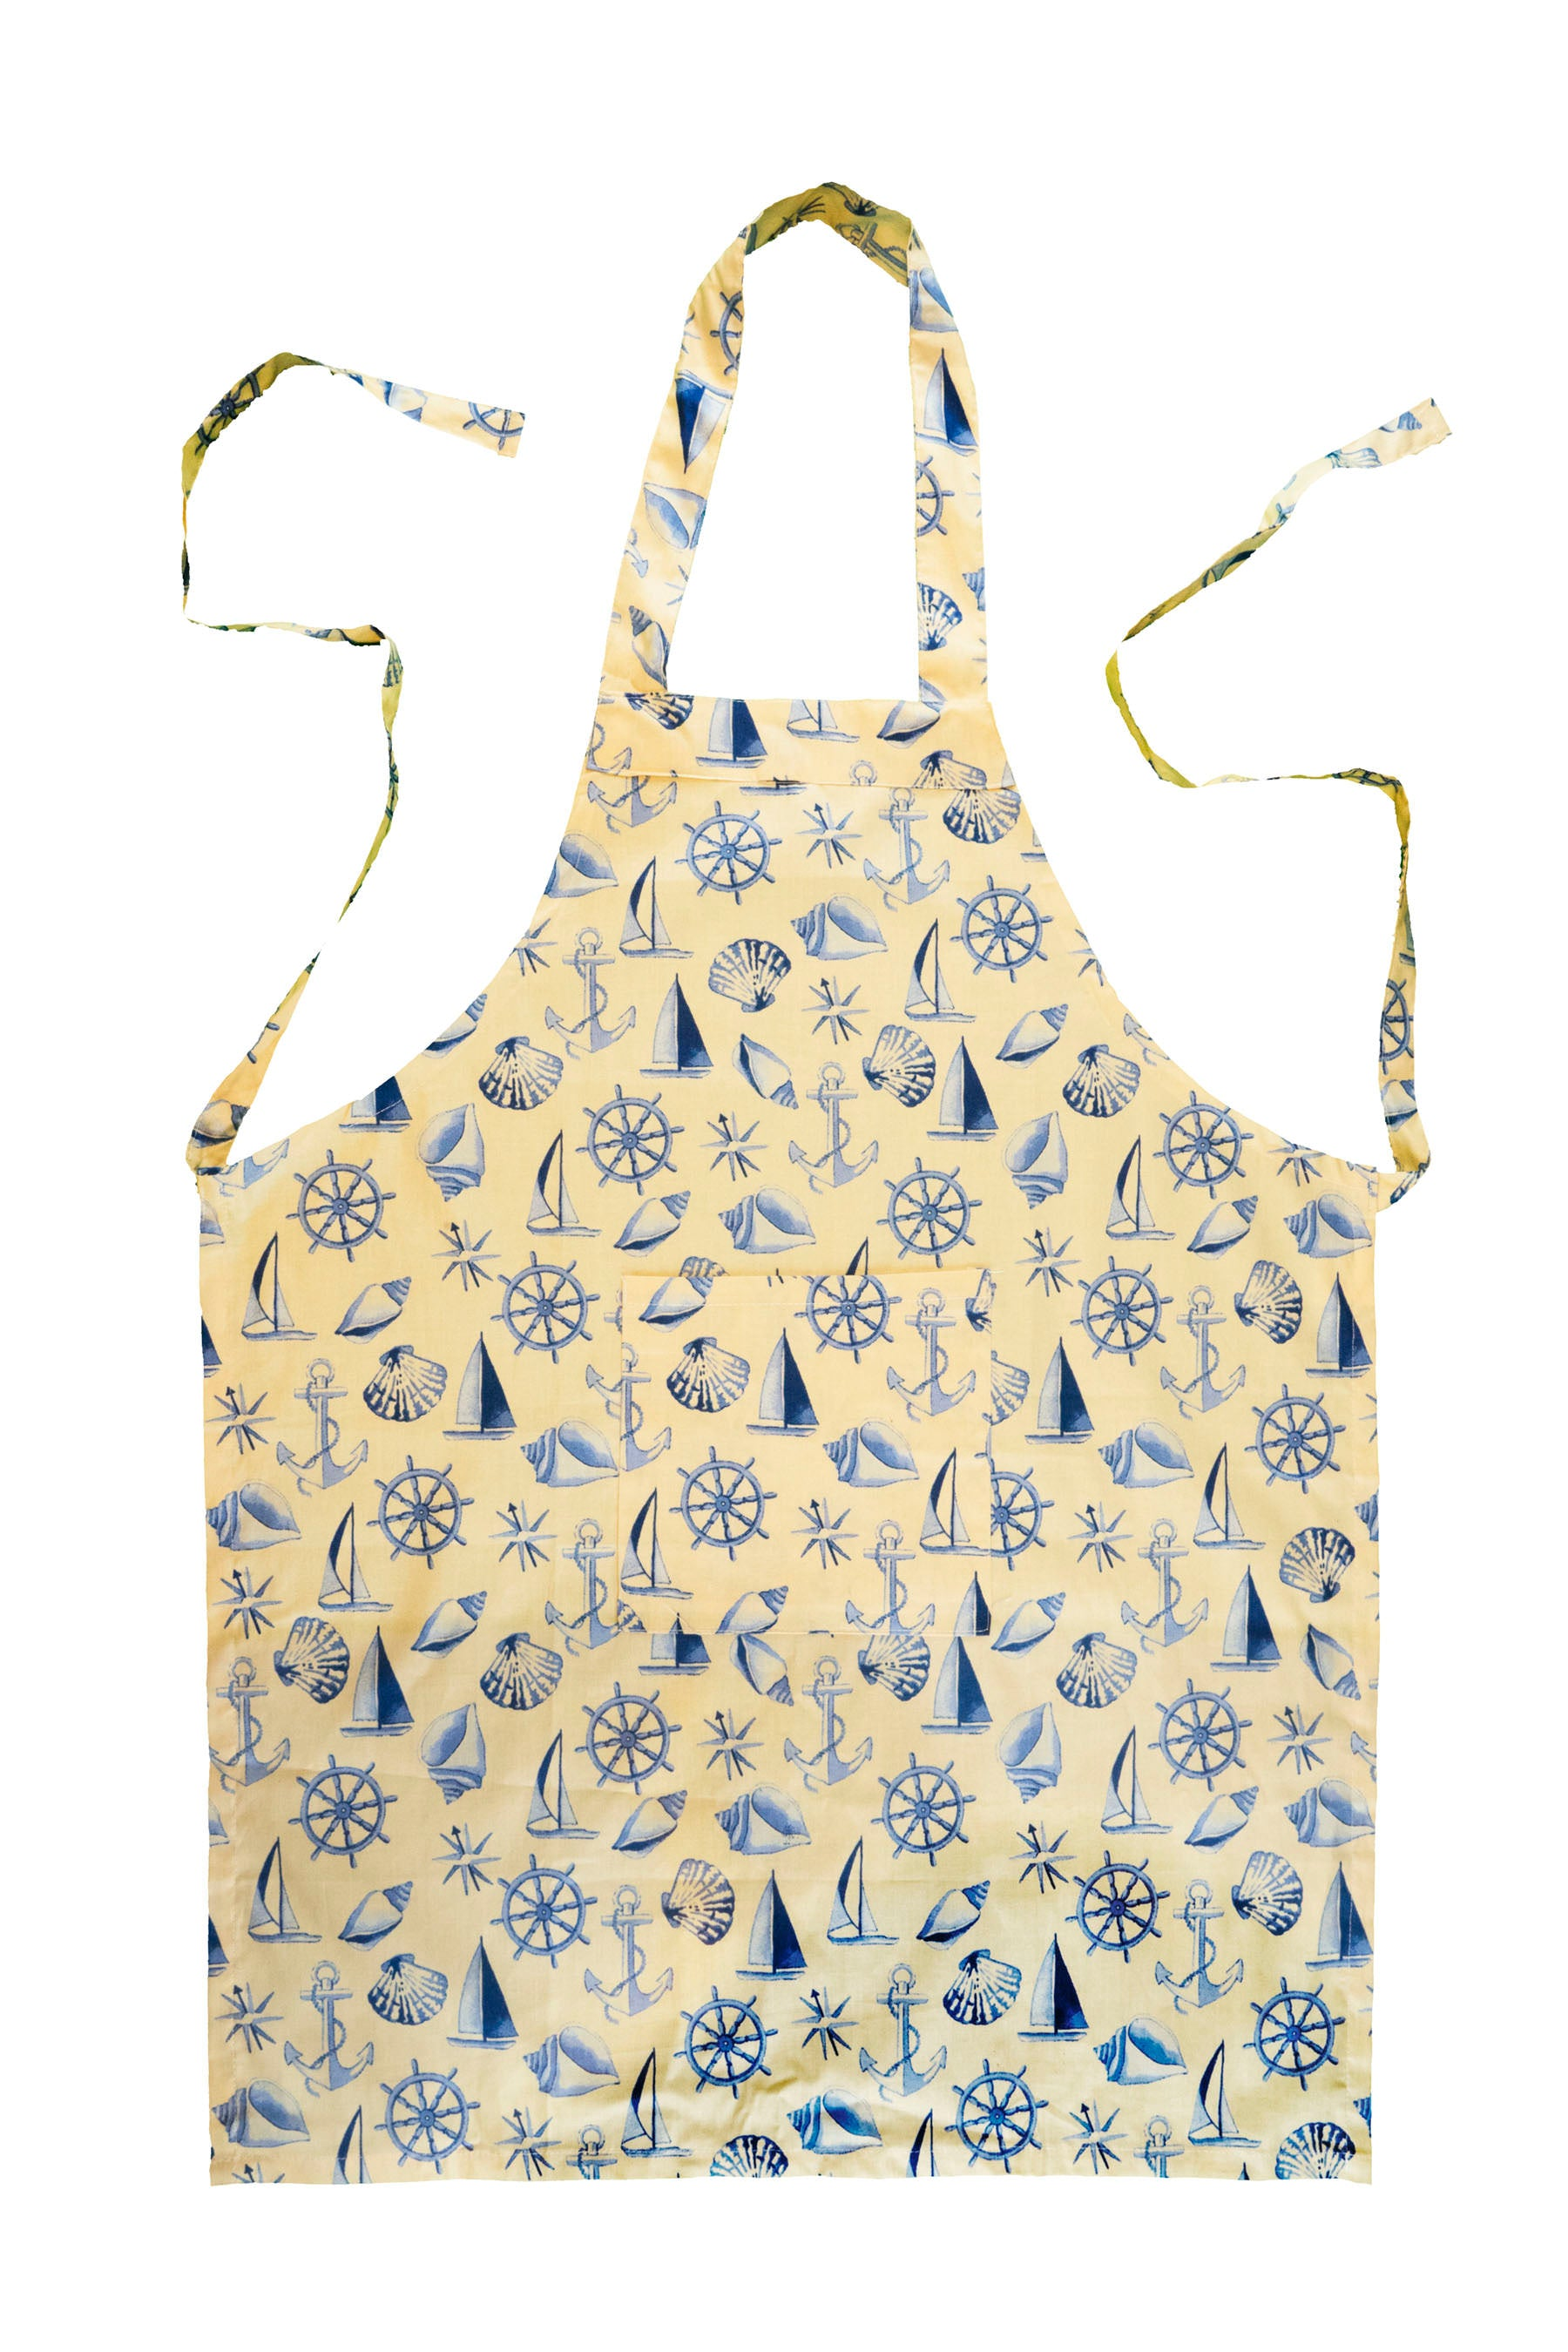 Stitch & Sparkle APRON with pocket, 100% Cotton, Nautical, Shell Beige,  One Size Fix For All